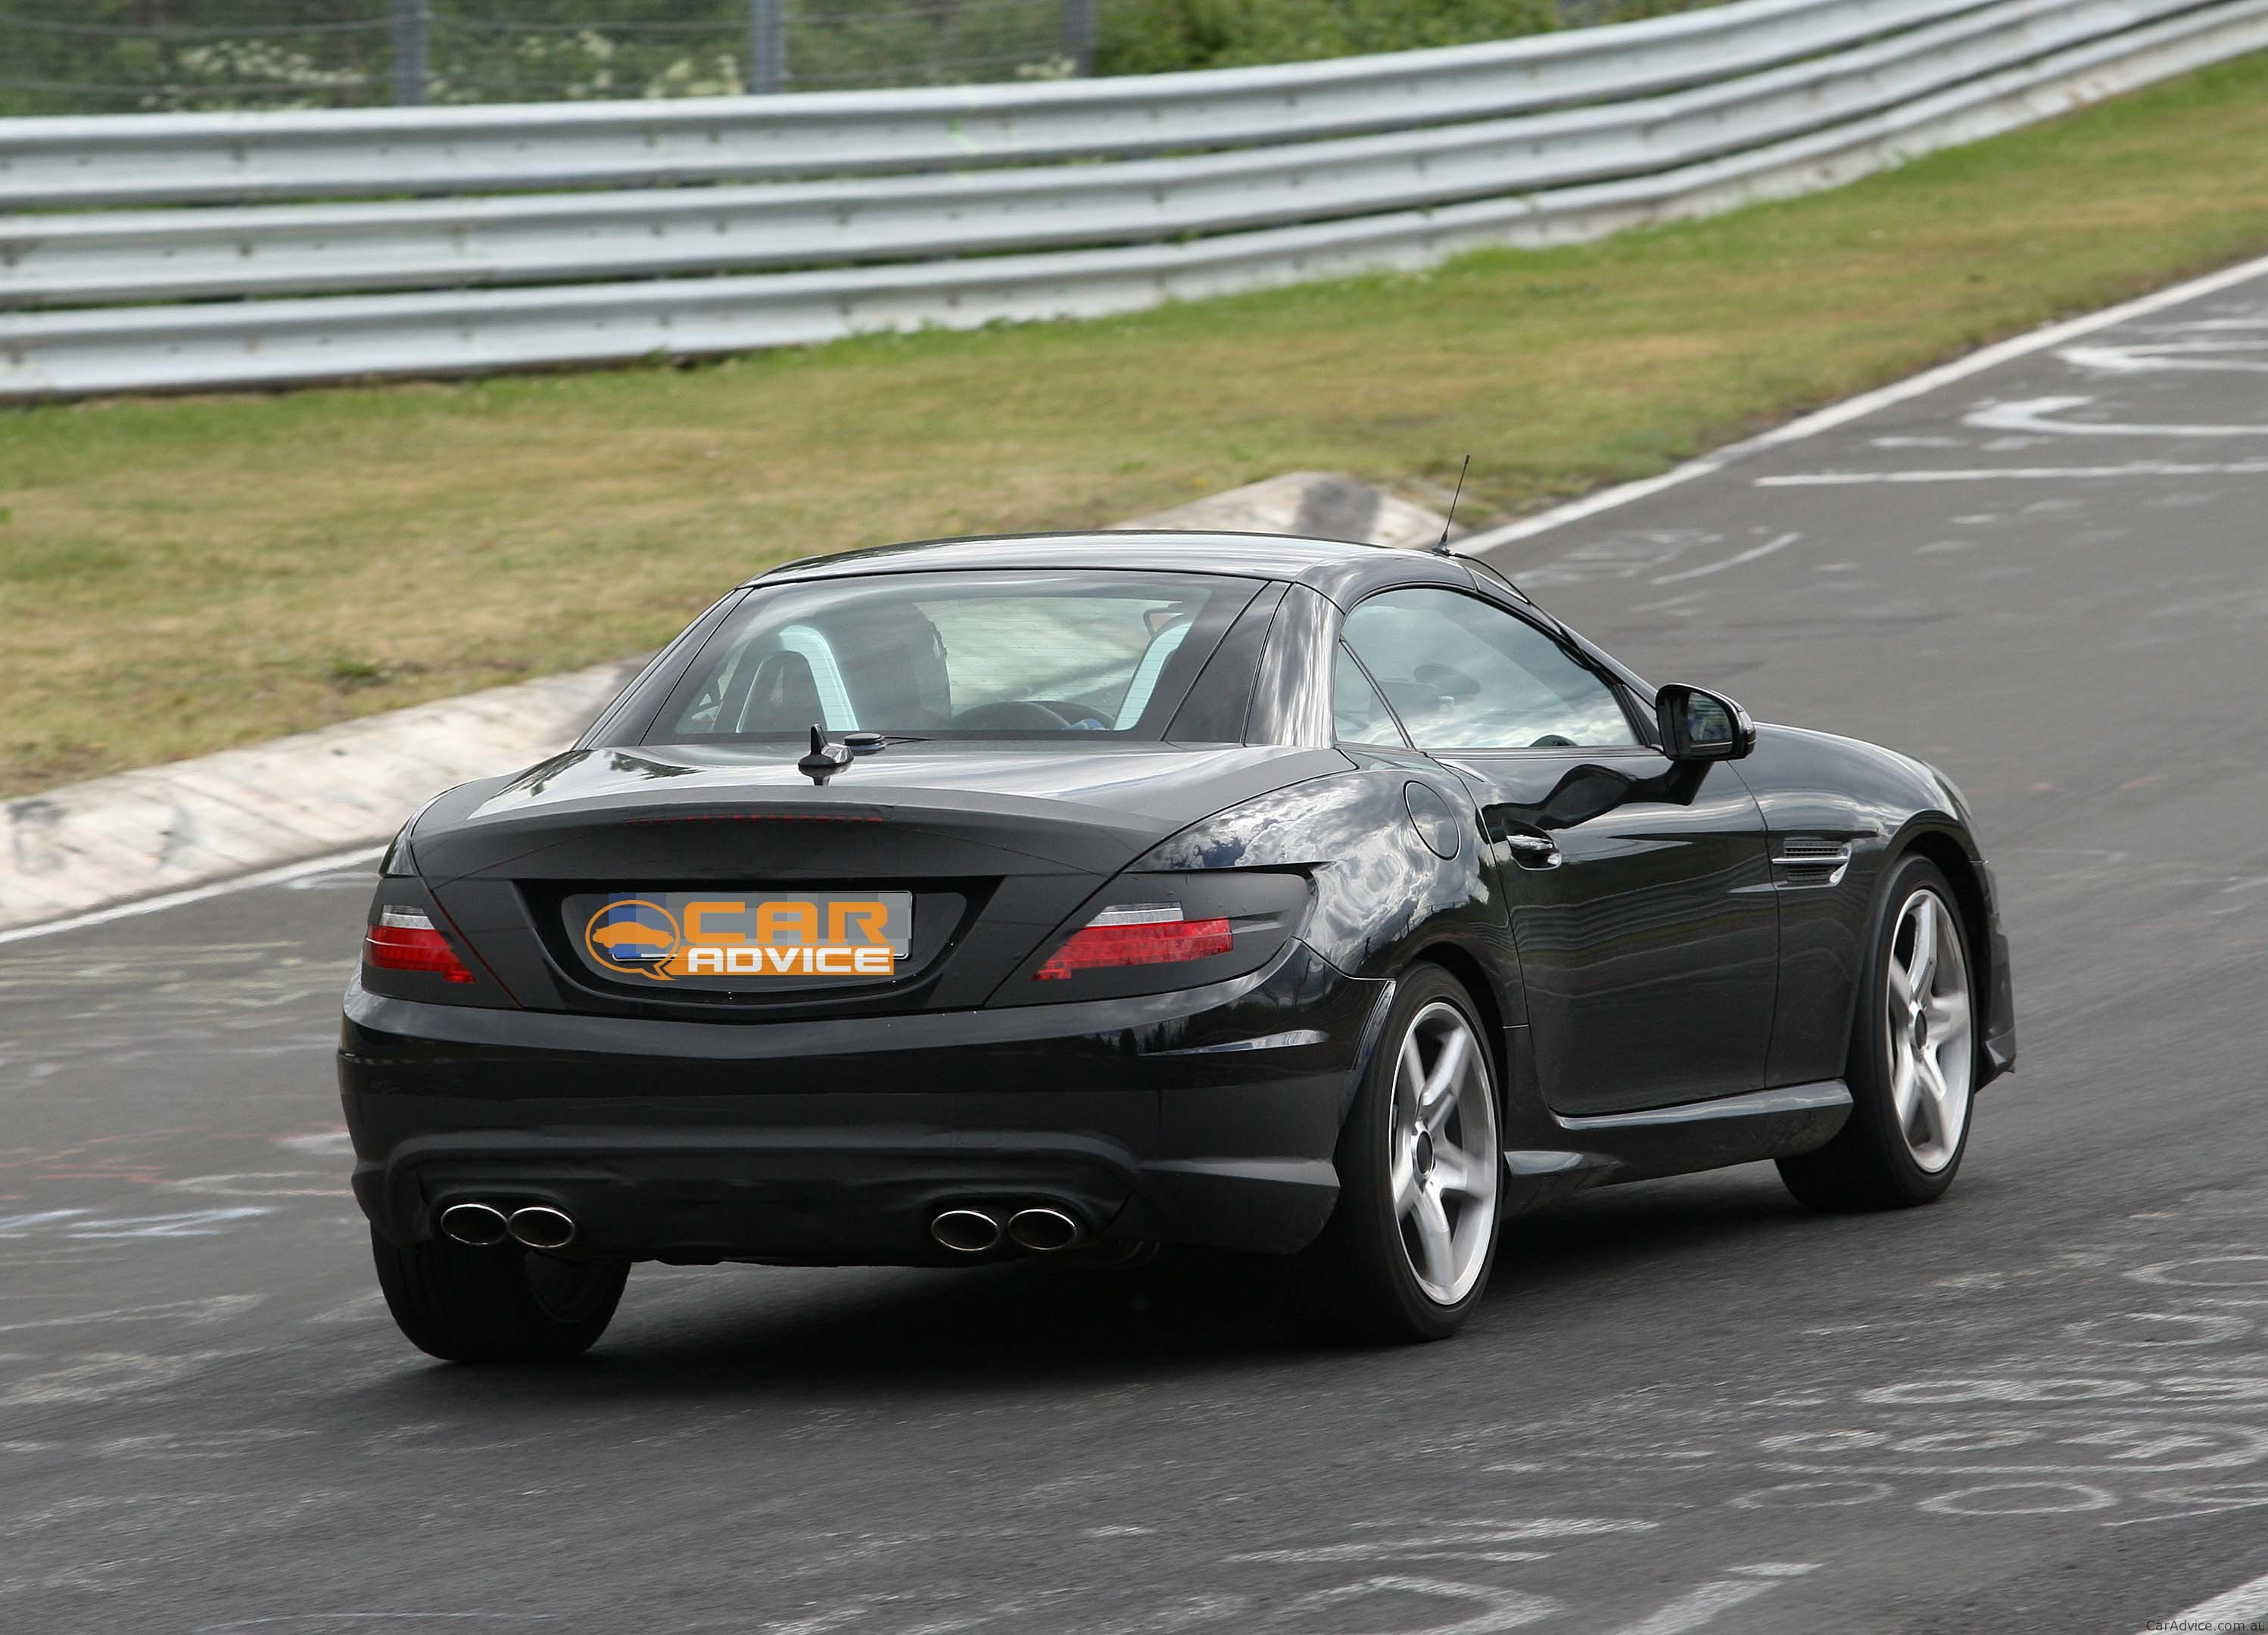 2012 mercedes benz slk 55 amg spy shots almost reveal all for Sell my mercedes benz